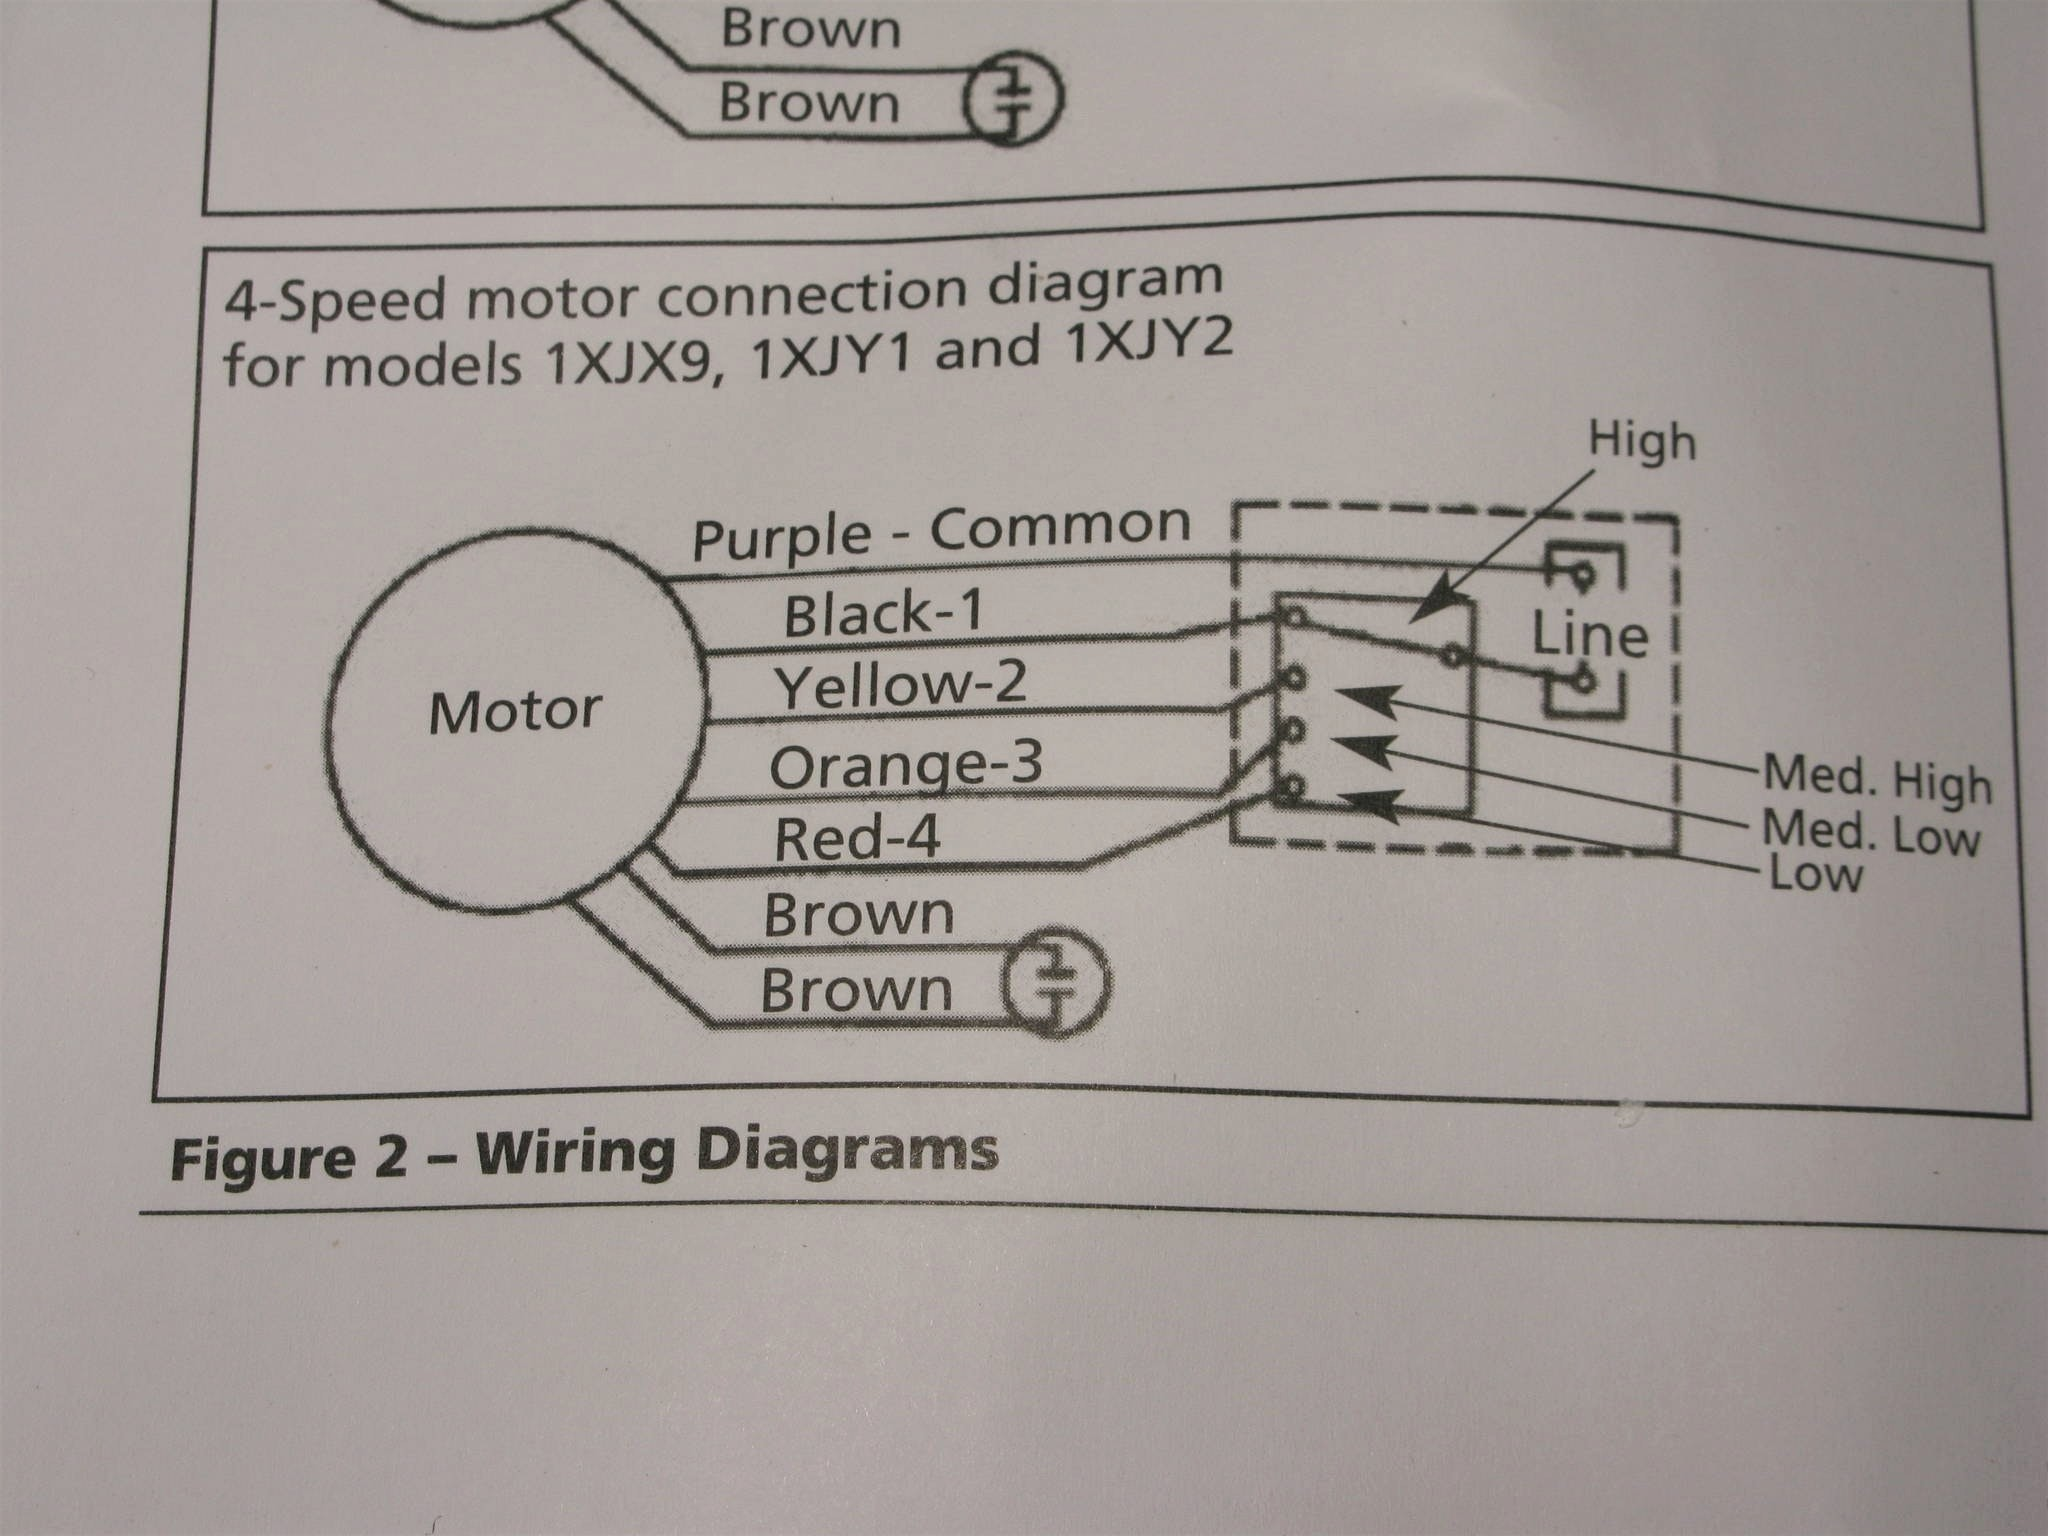 440 Vac 3 Phase Wiring Diagram Get Free Image About Wiring Diagram